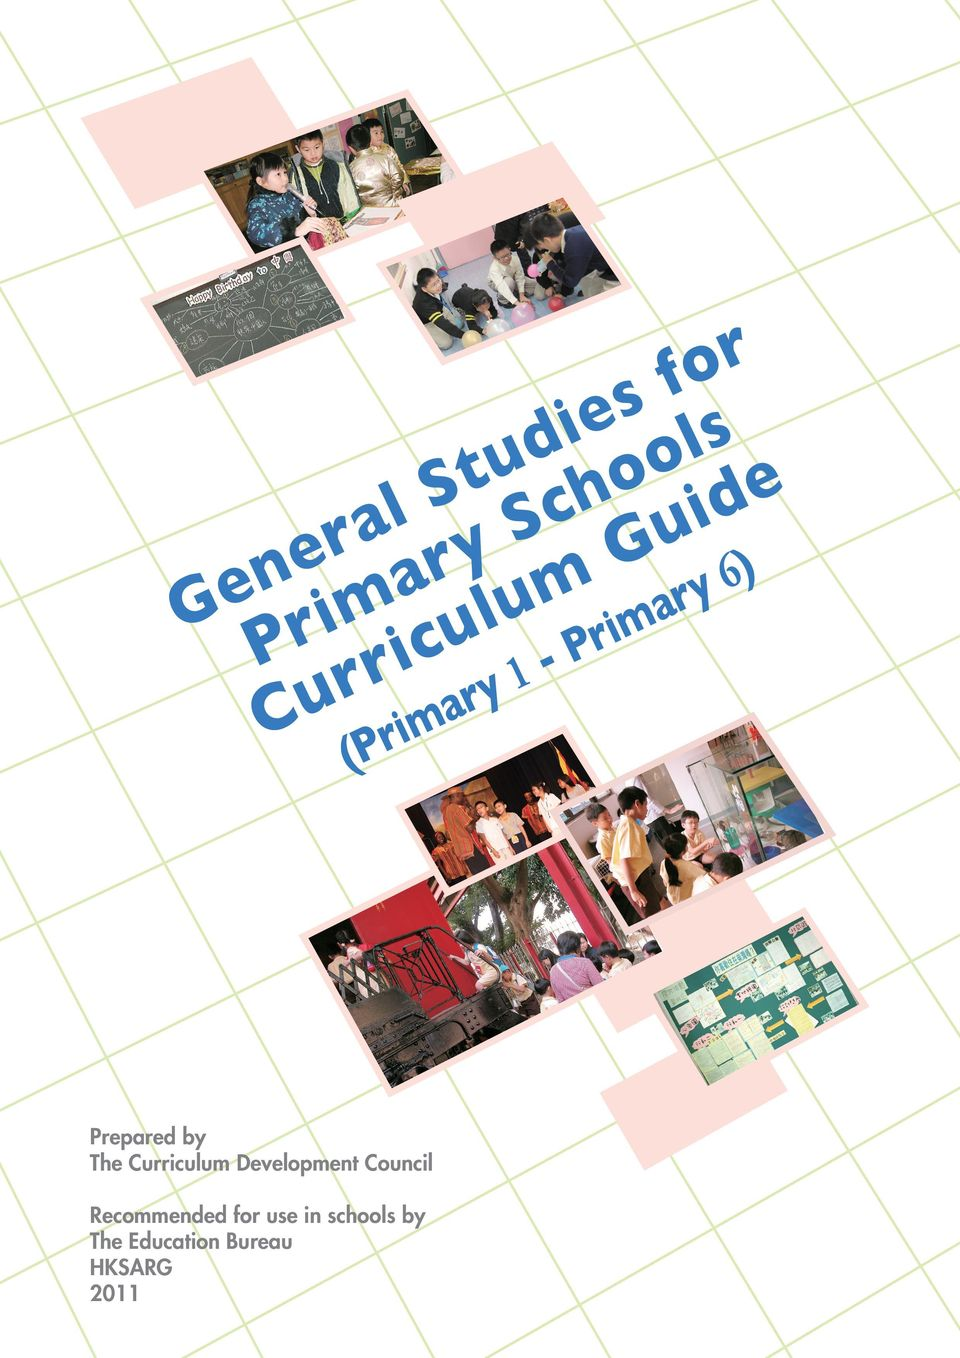 Prepared by The Curriculum Development Council